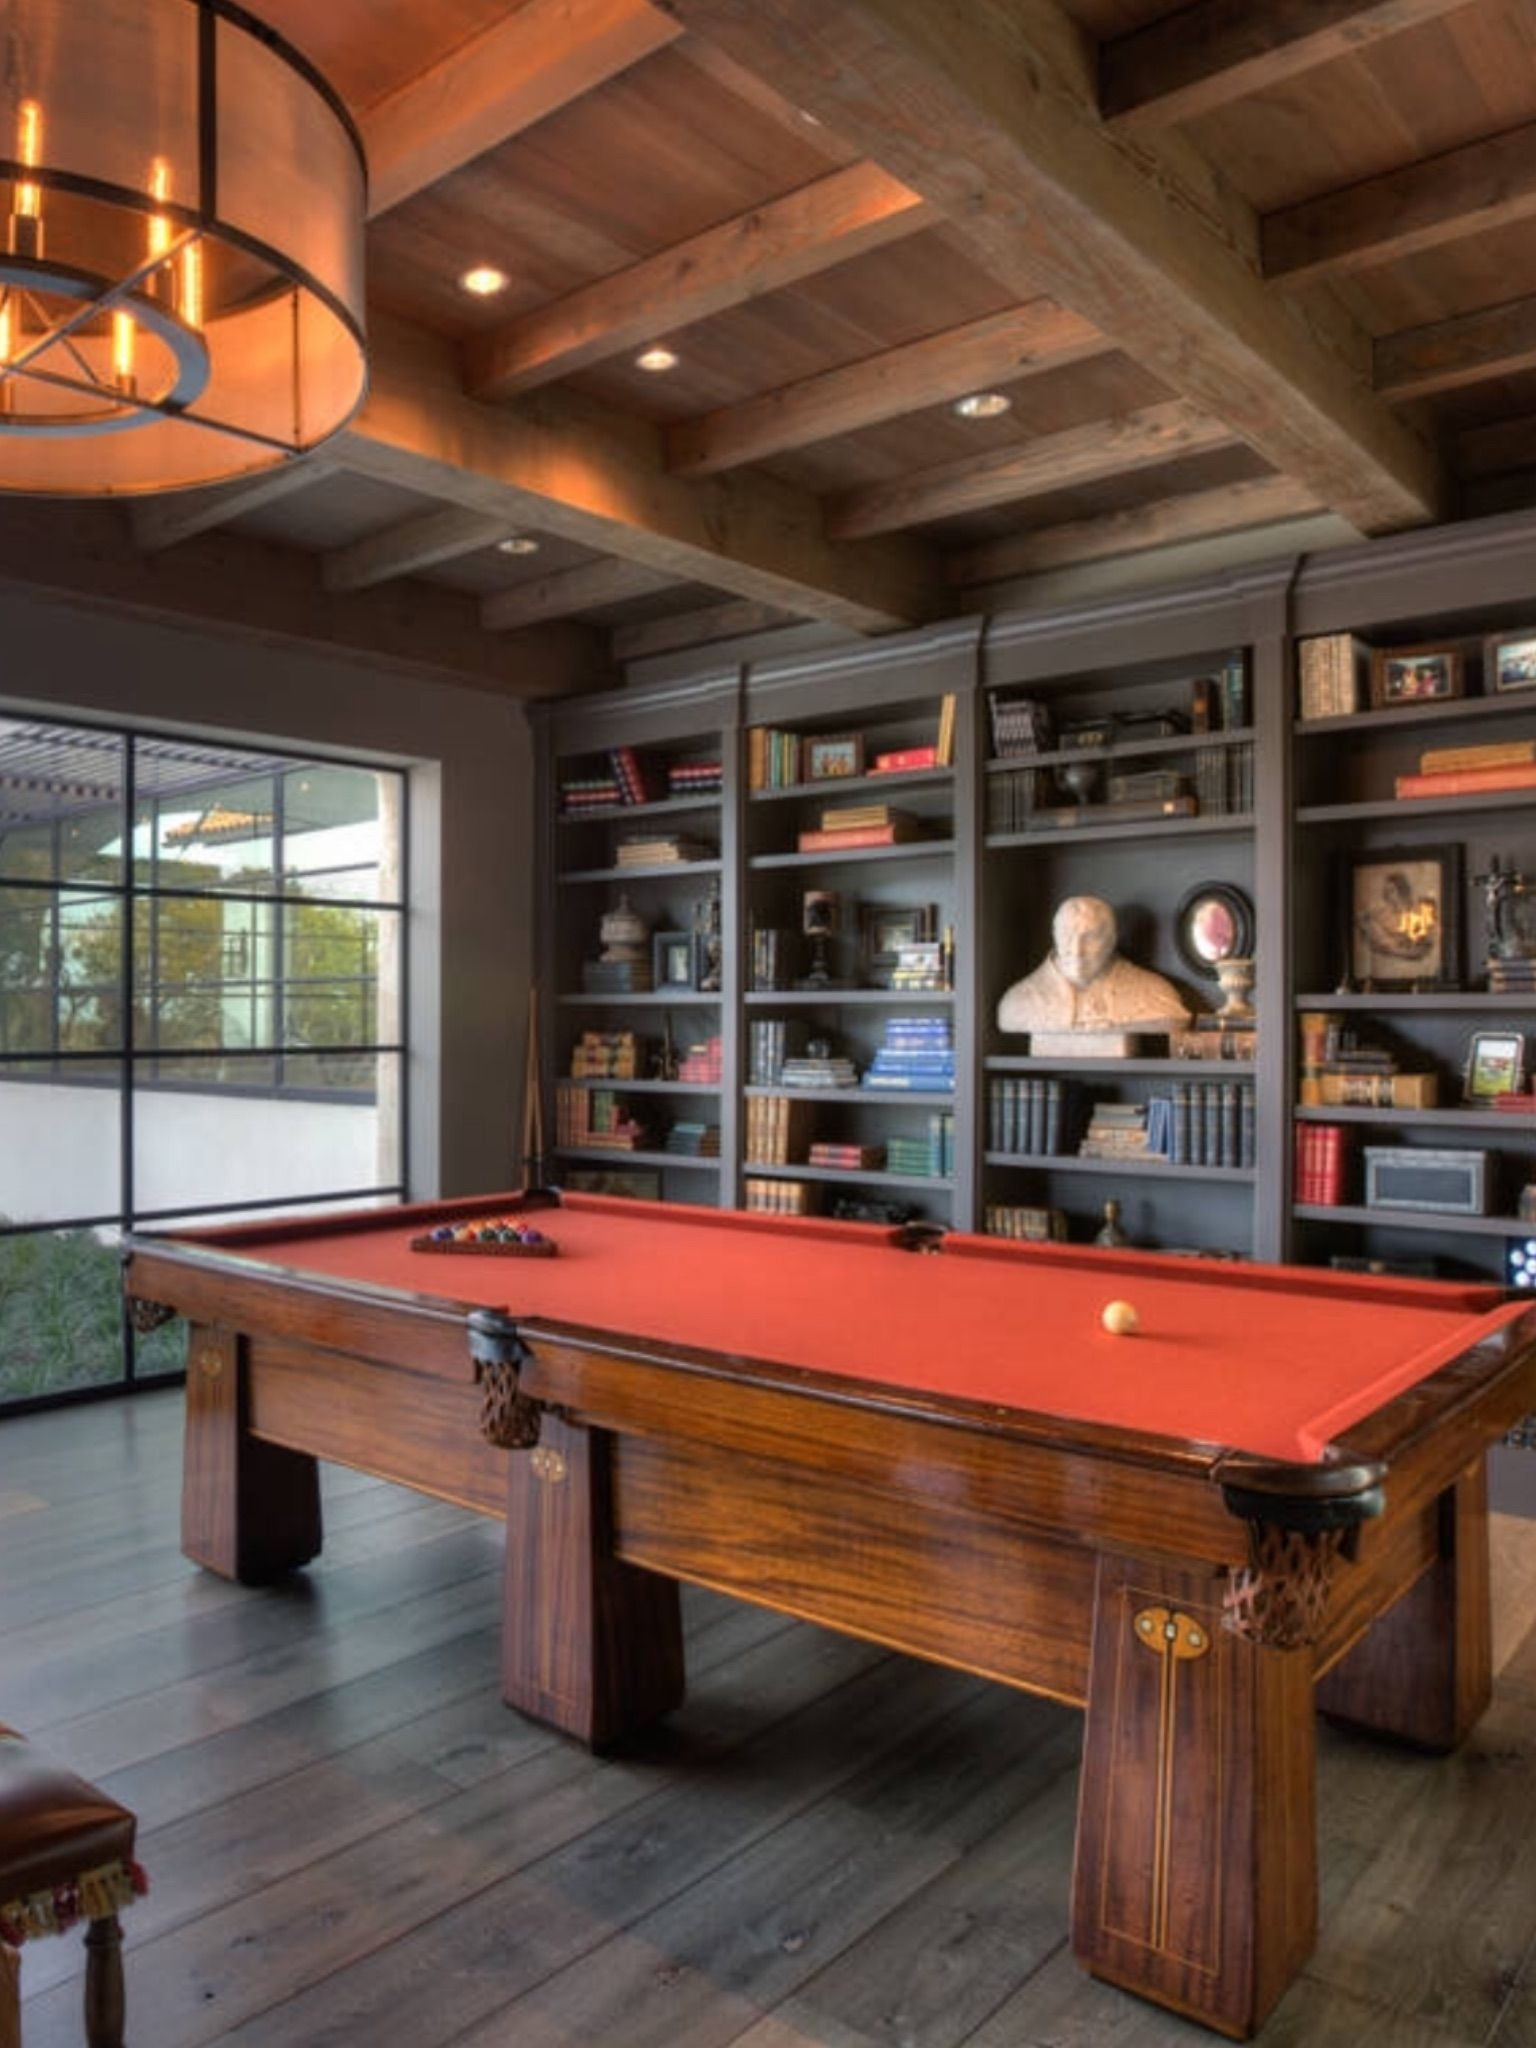 Rec Room Bar Designs: Pin By Endurance At Home On Home Game Rooms